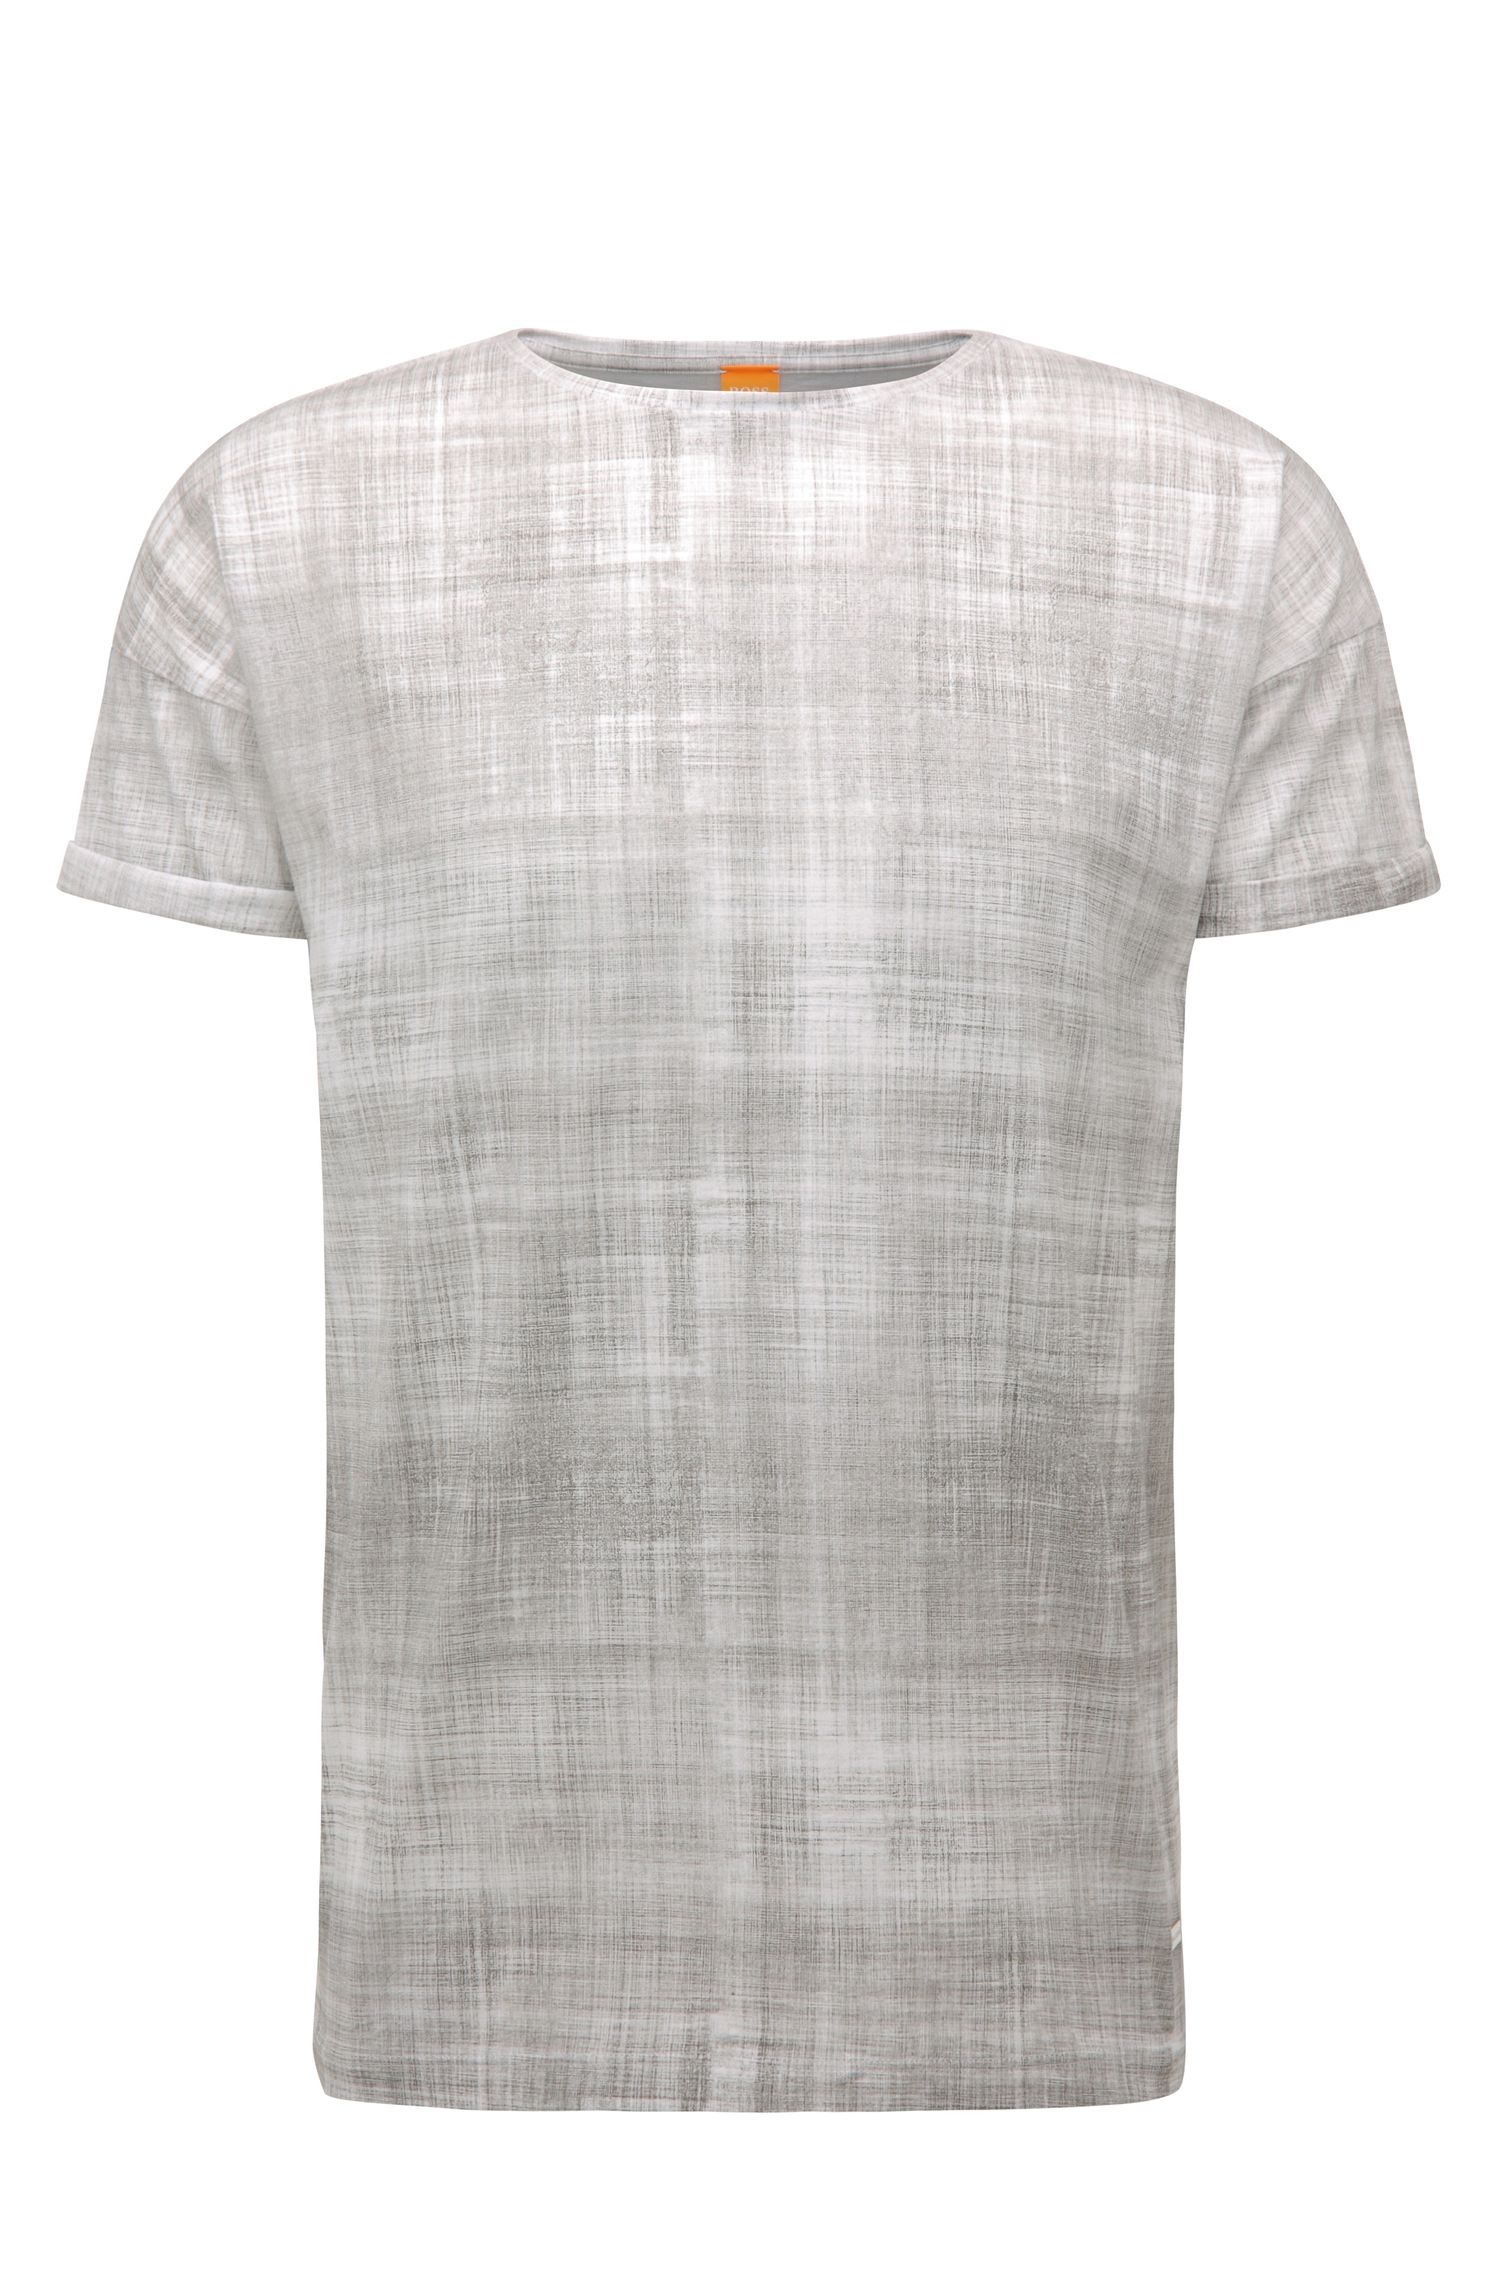 Relaxed-fit print T-shirt in cotton: 'Tomotion'